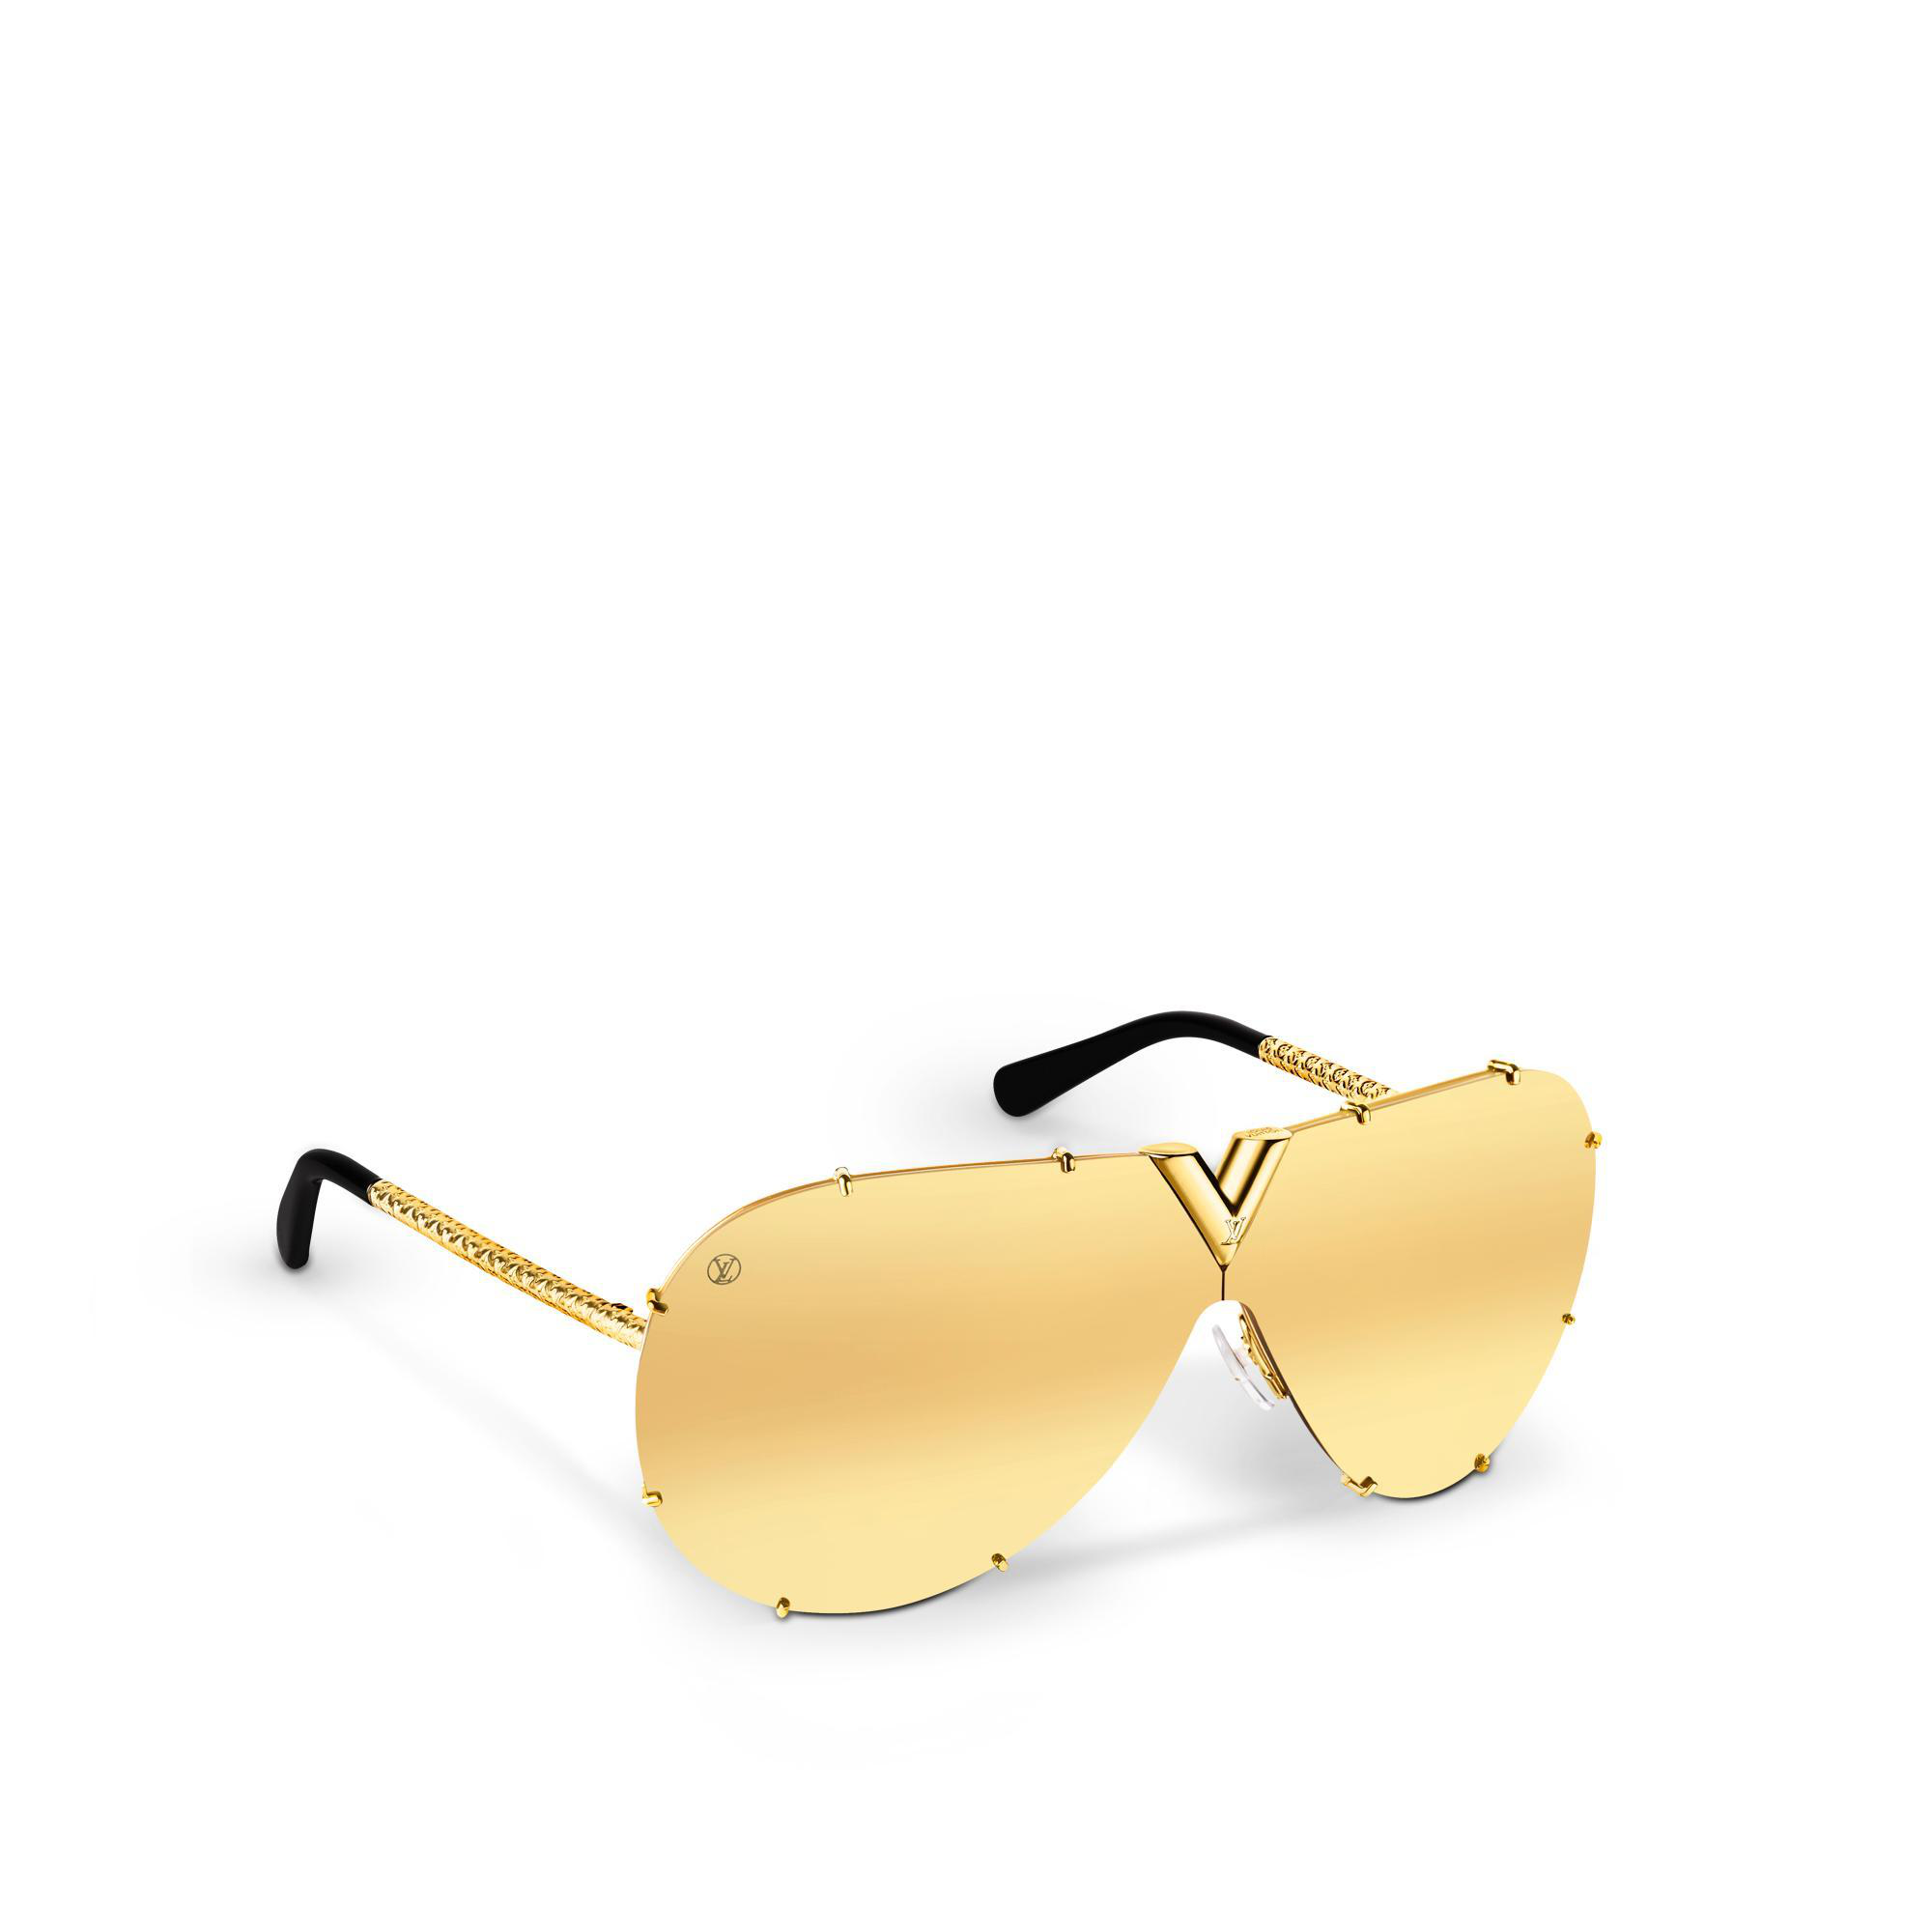 f679d0d8b3 Louis Vuitton Lv Drive Sunglasses